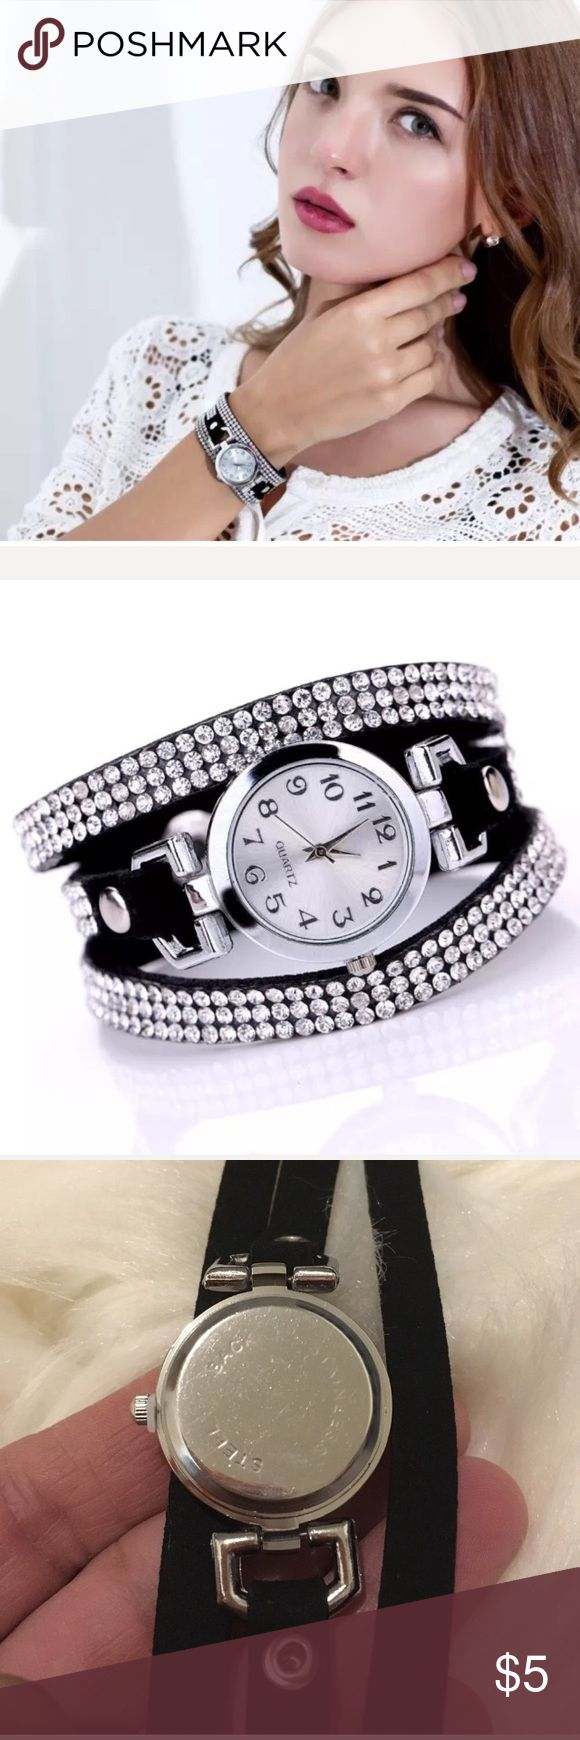 ❌ Stocking Stuffer Black Rhinestone Watch New in Package- Holiday Watch Beautiful & Chic Black Diamond Rhinestone Quartz high pressure suede band- Battery included Boutique Jewelry